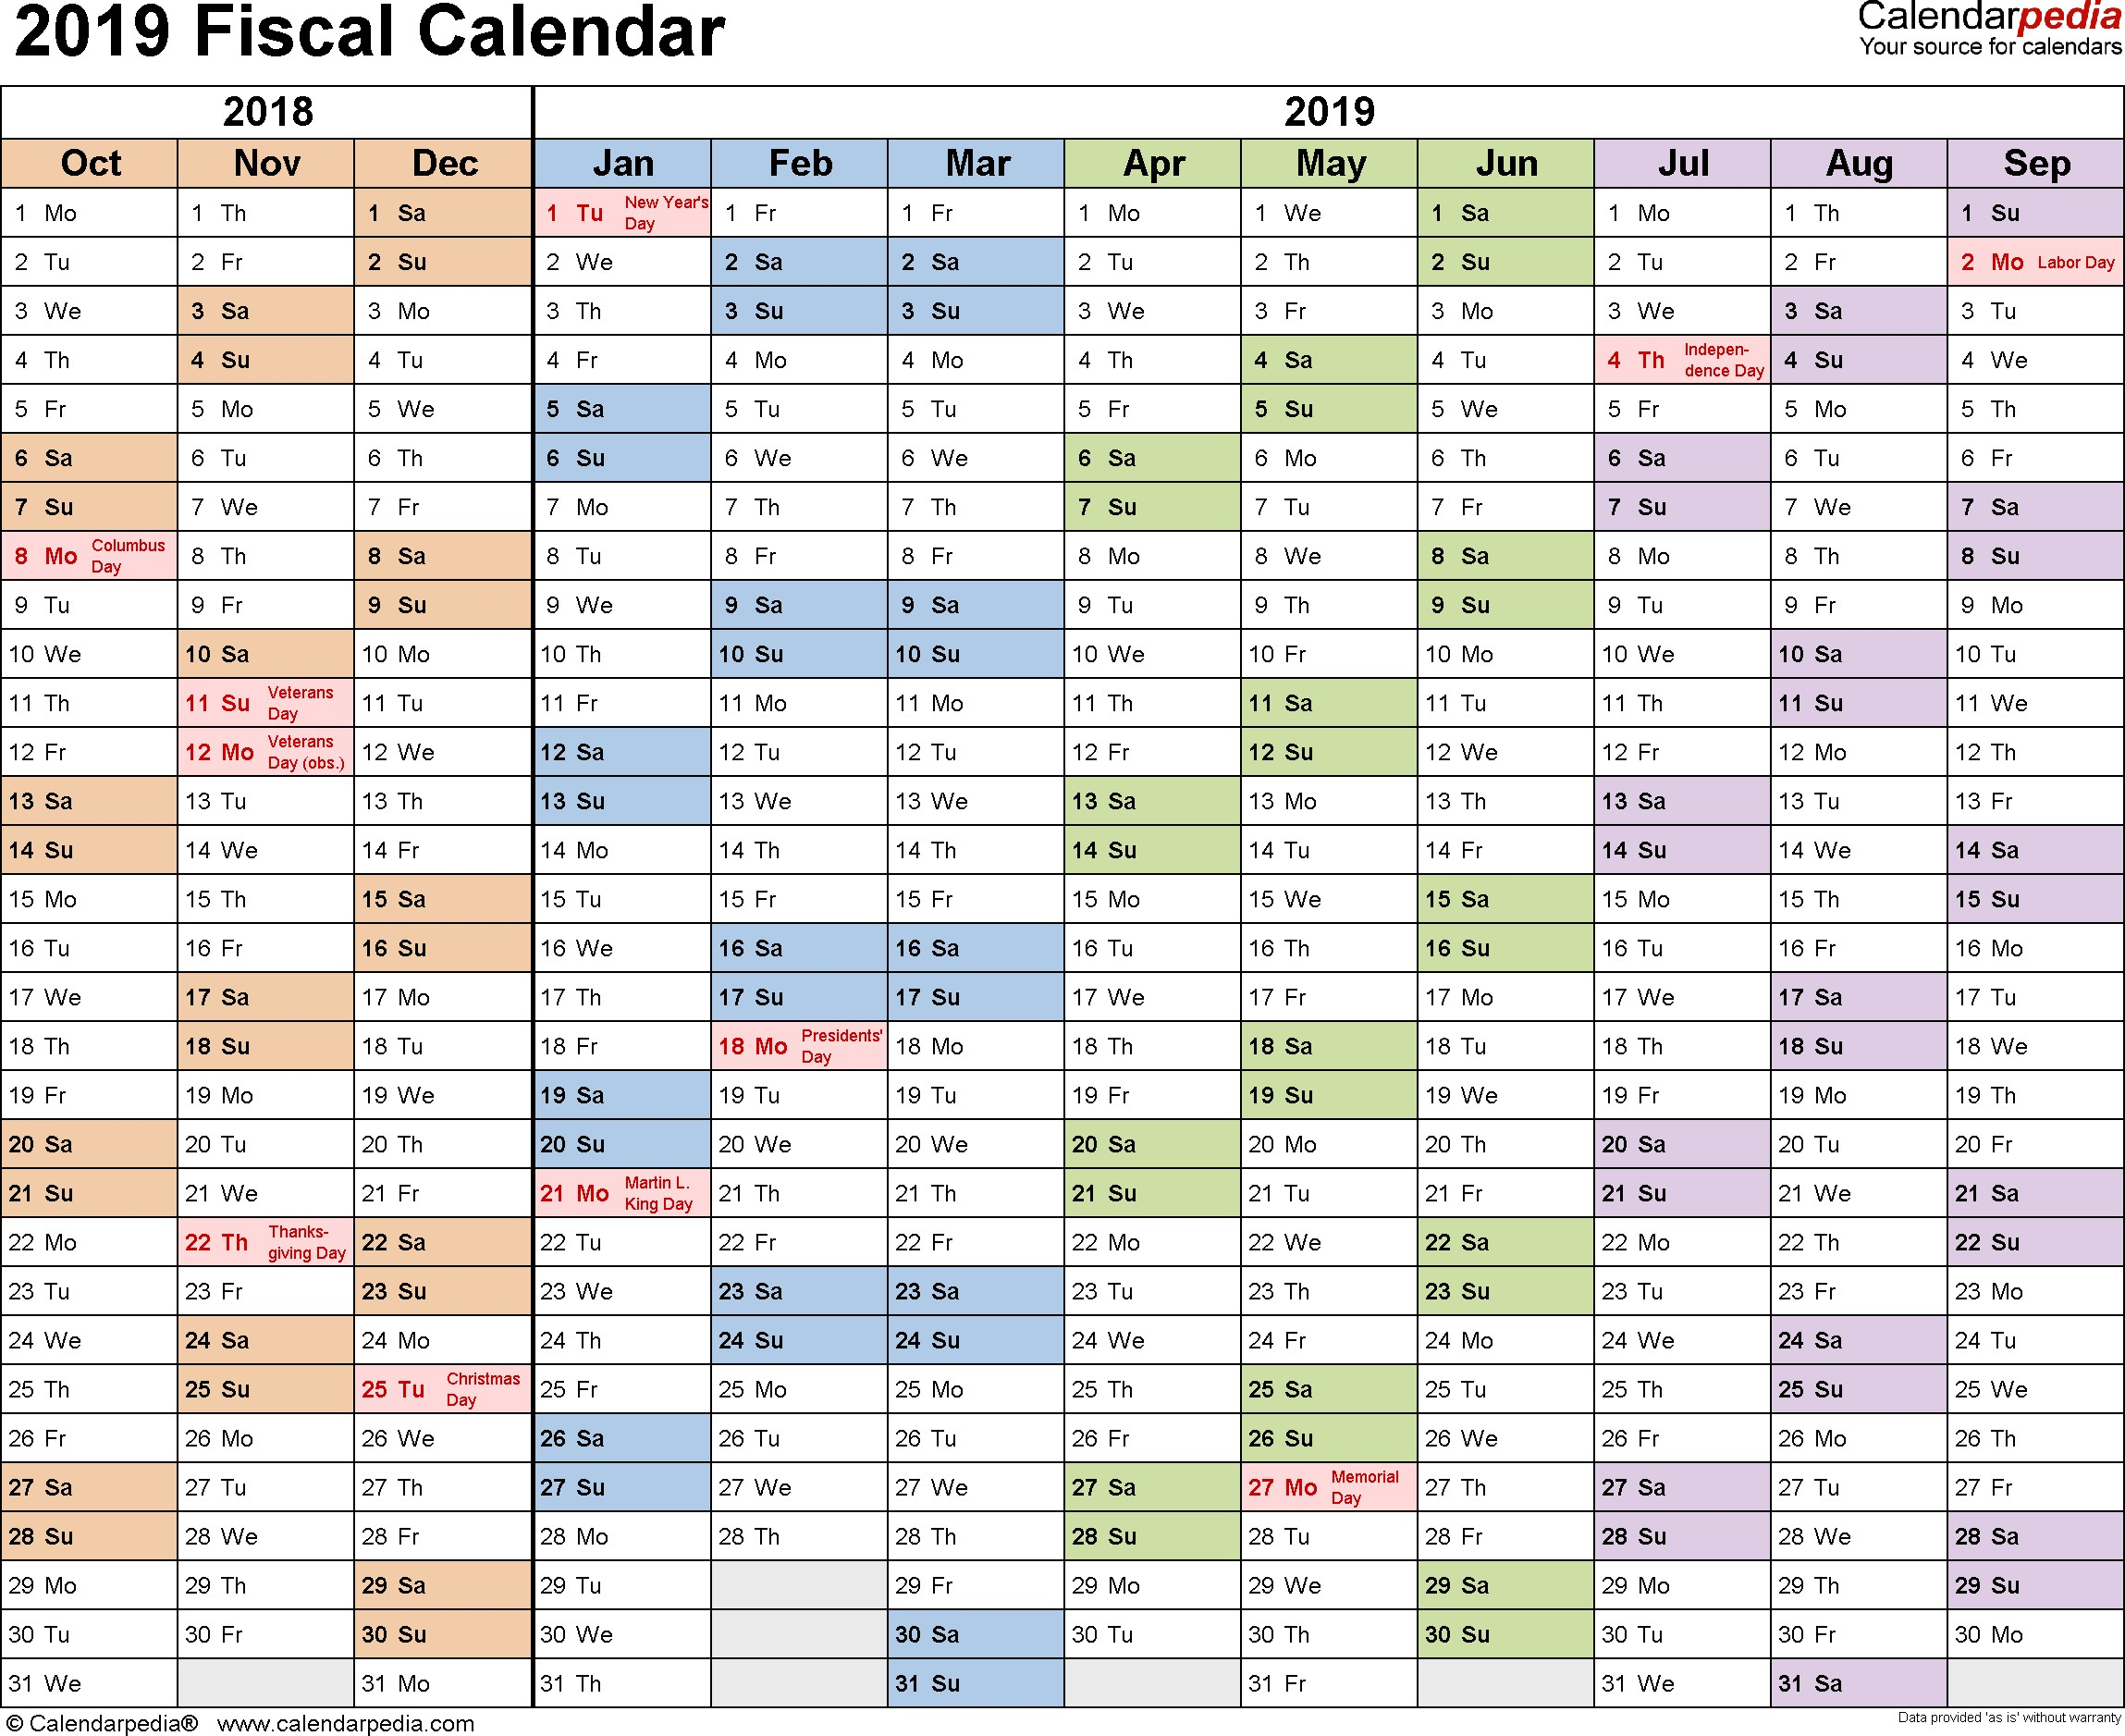 March Calendar 2019 Canada Más Arriba-a-fecha Fiscal Calendars 2019 as Free Printable Word Templates Of March Calendar 2019 Canada Más Actual 2019 Fiscal Calendar Lara Expolicenciaslatam